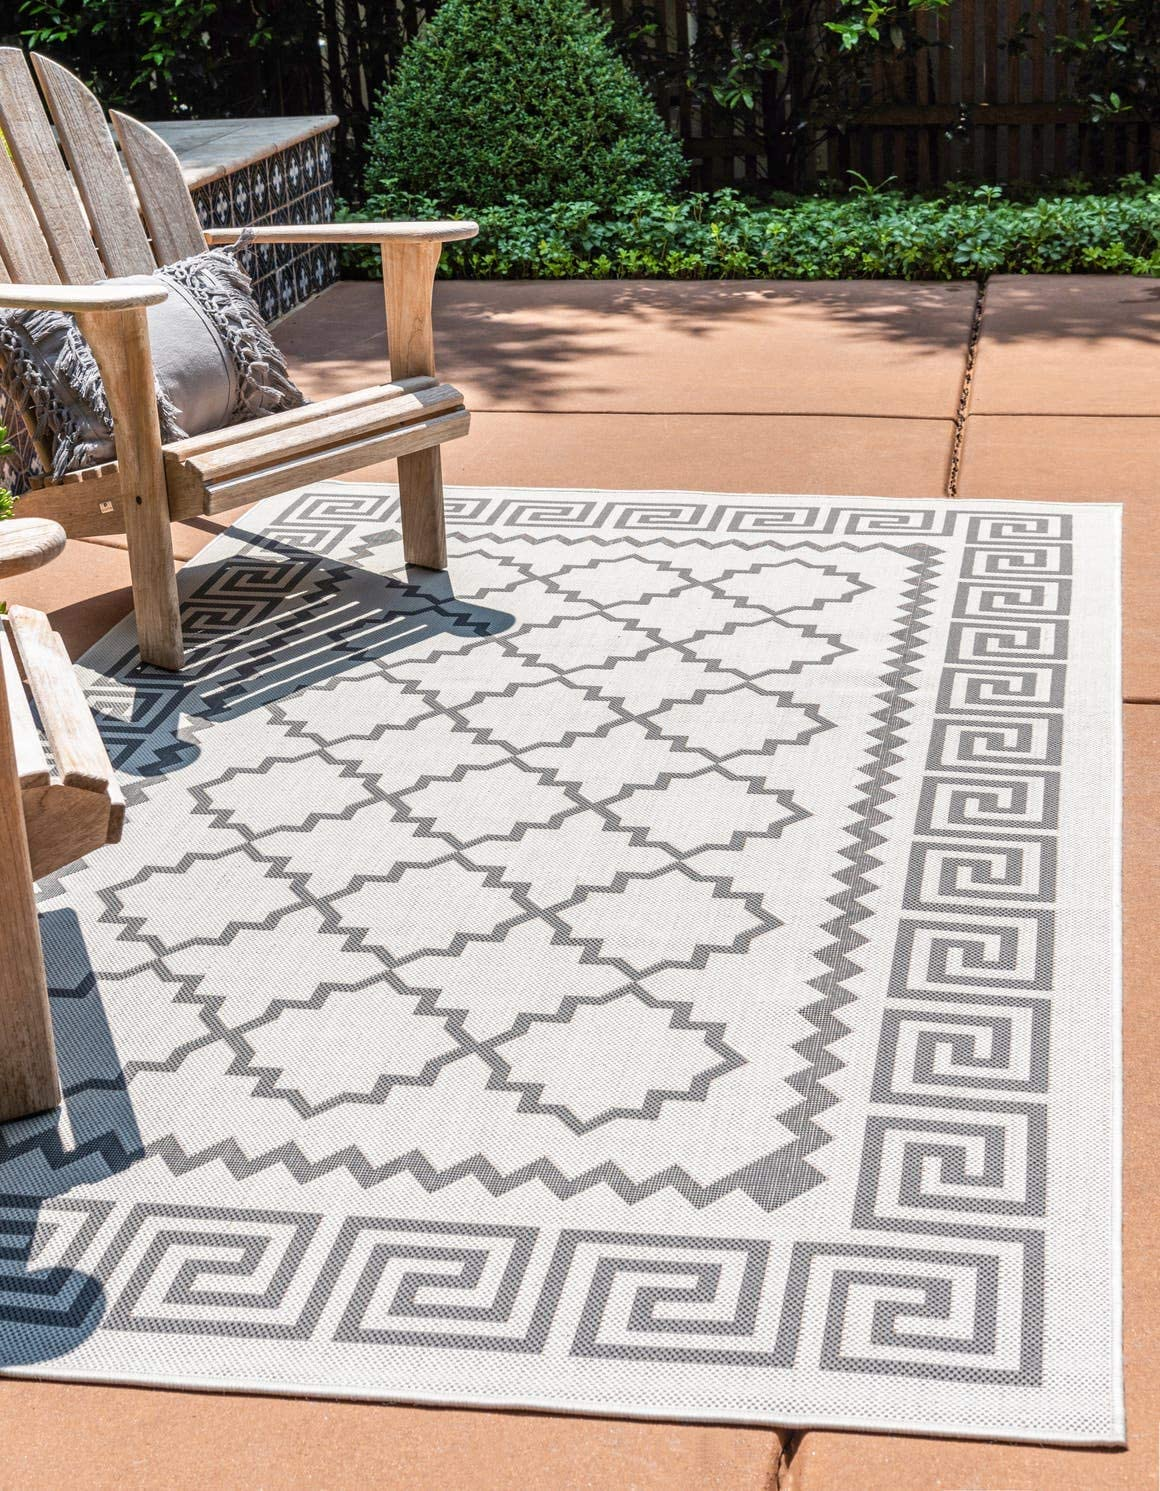 Unique Loom Outdoor Trellis Collection Greek Key Border Geometric Transitional Indoor and Outdoor Flatweave Gray Black Area Rug 6 0 x 9 0